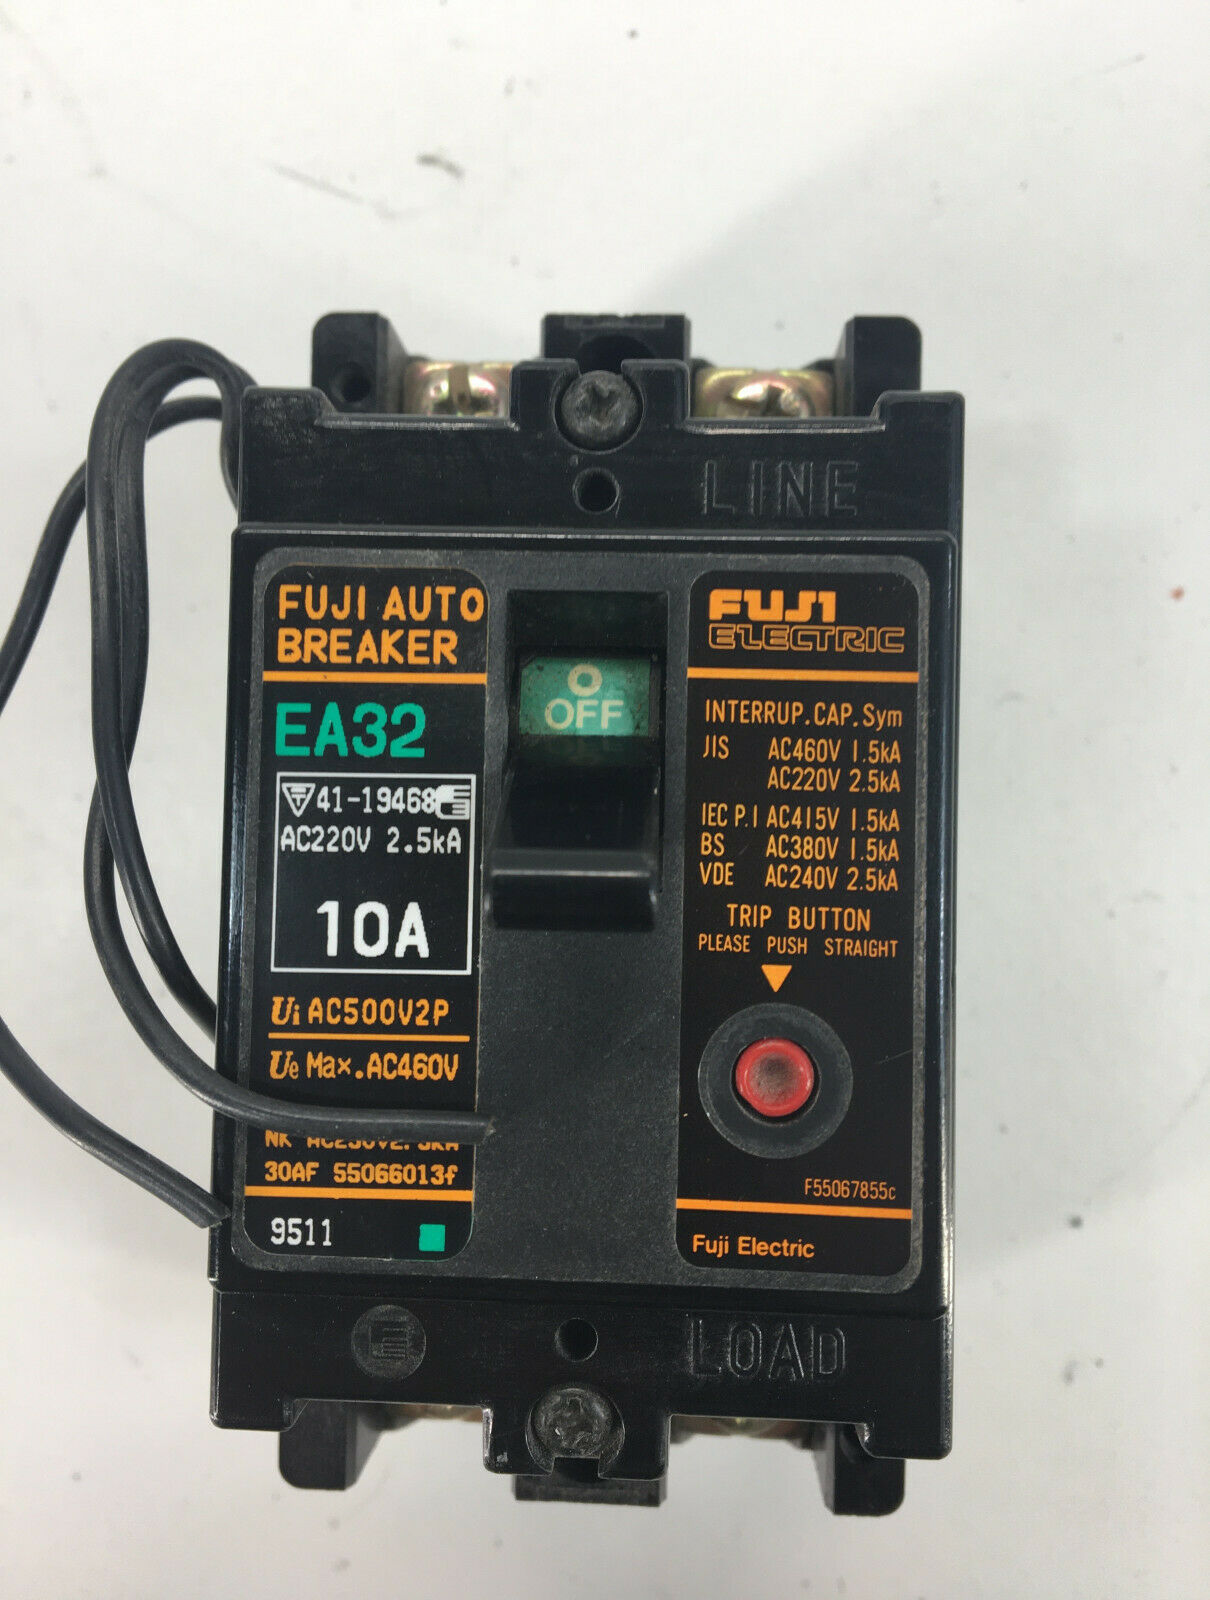 Primary image for Fuji EA32 Breaker 10A 2Pole w/Alarm Switch